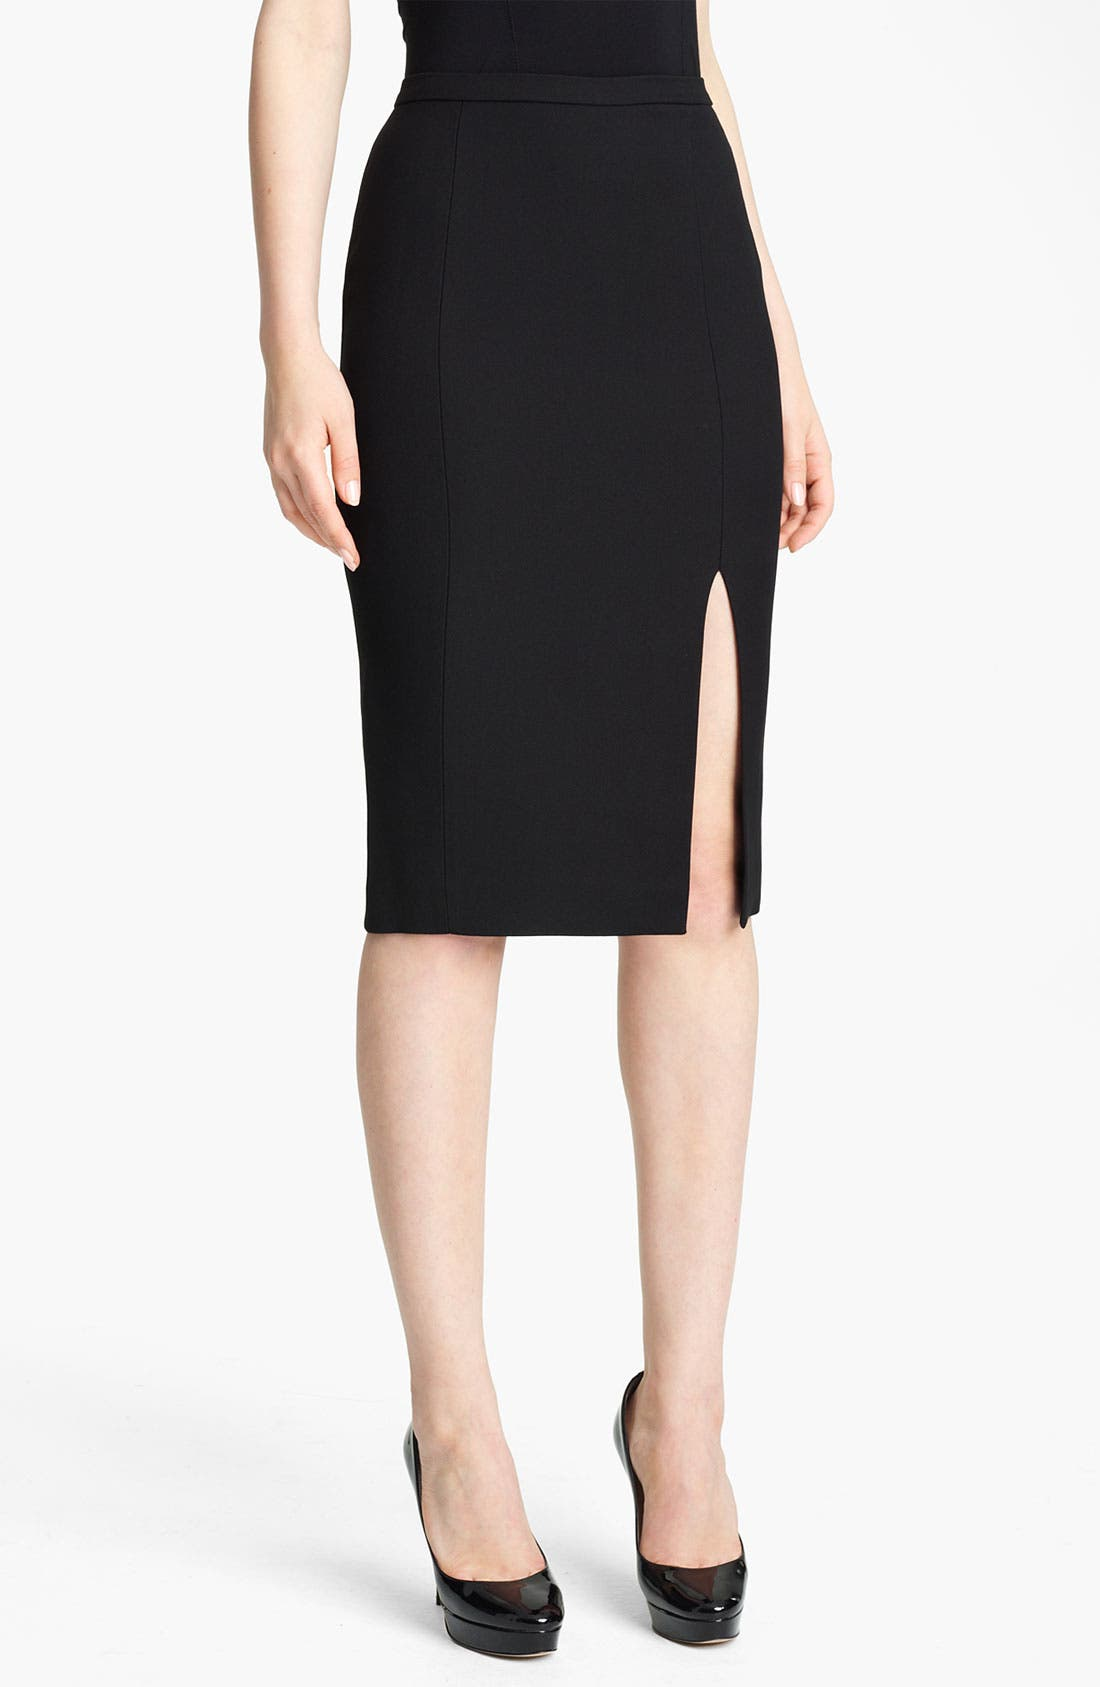 Alternate Image 1 Selected - Emilio Pucci Wool & Silk Pencil Skirt